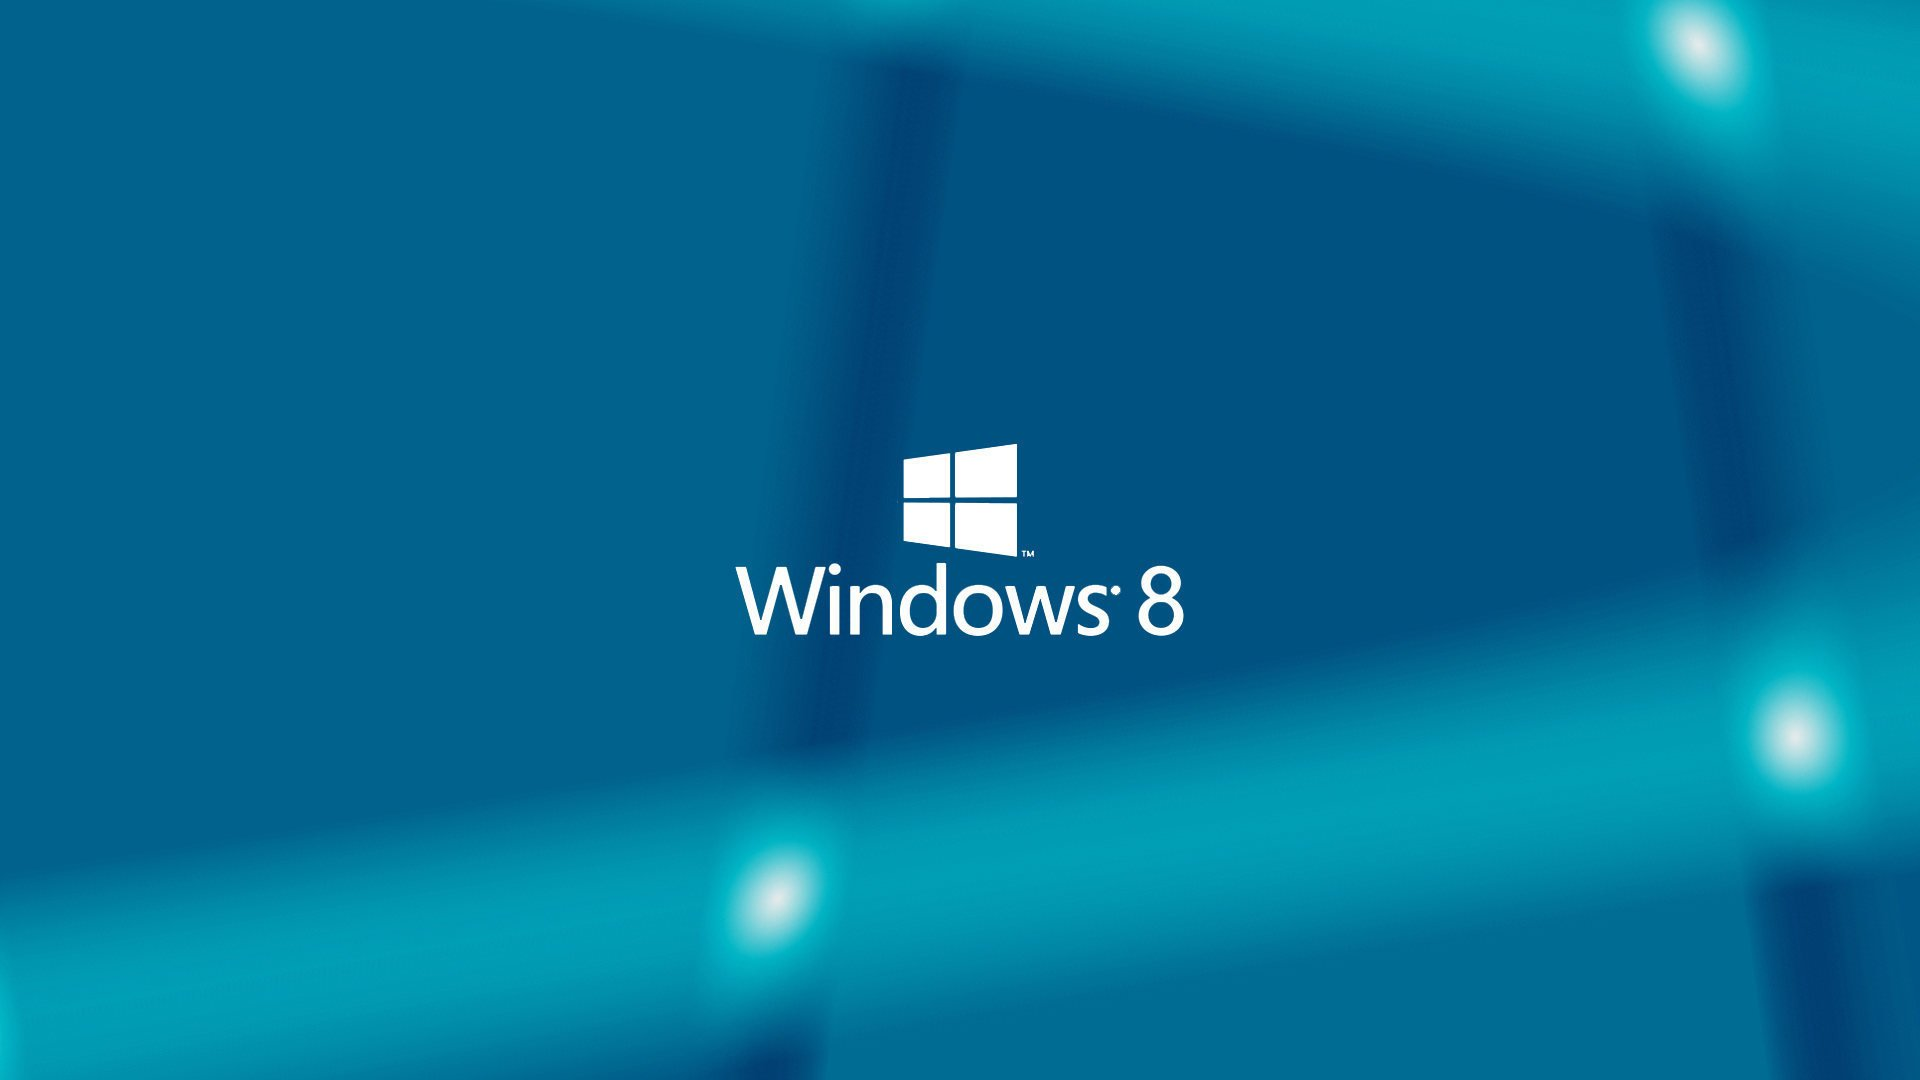 Заставка Windows 8